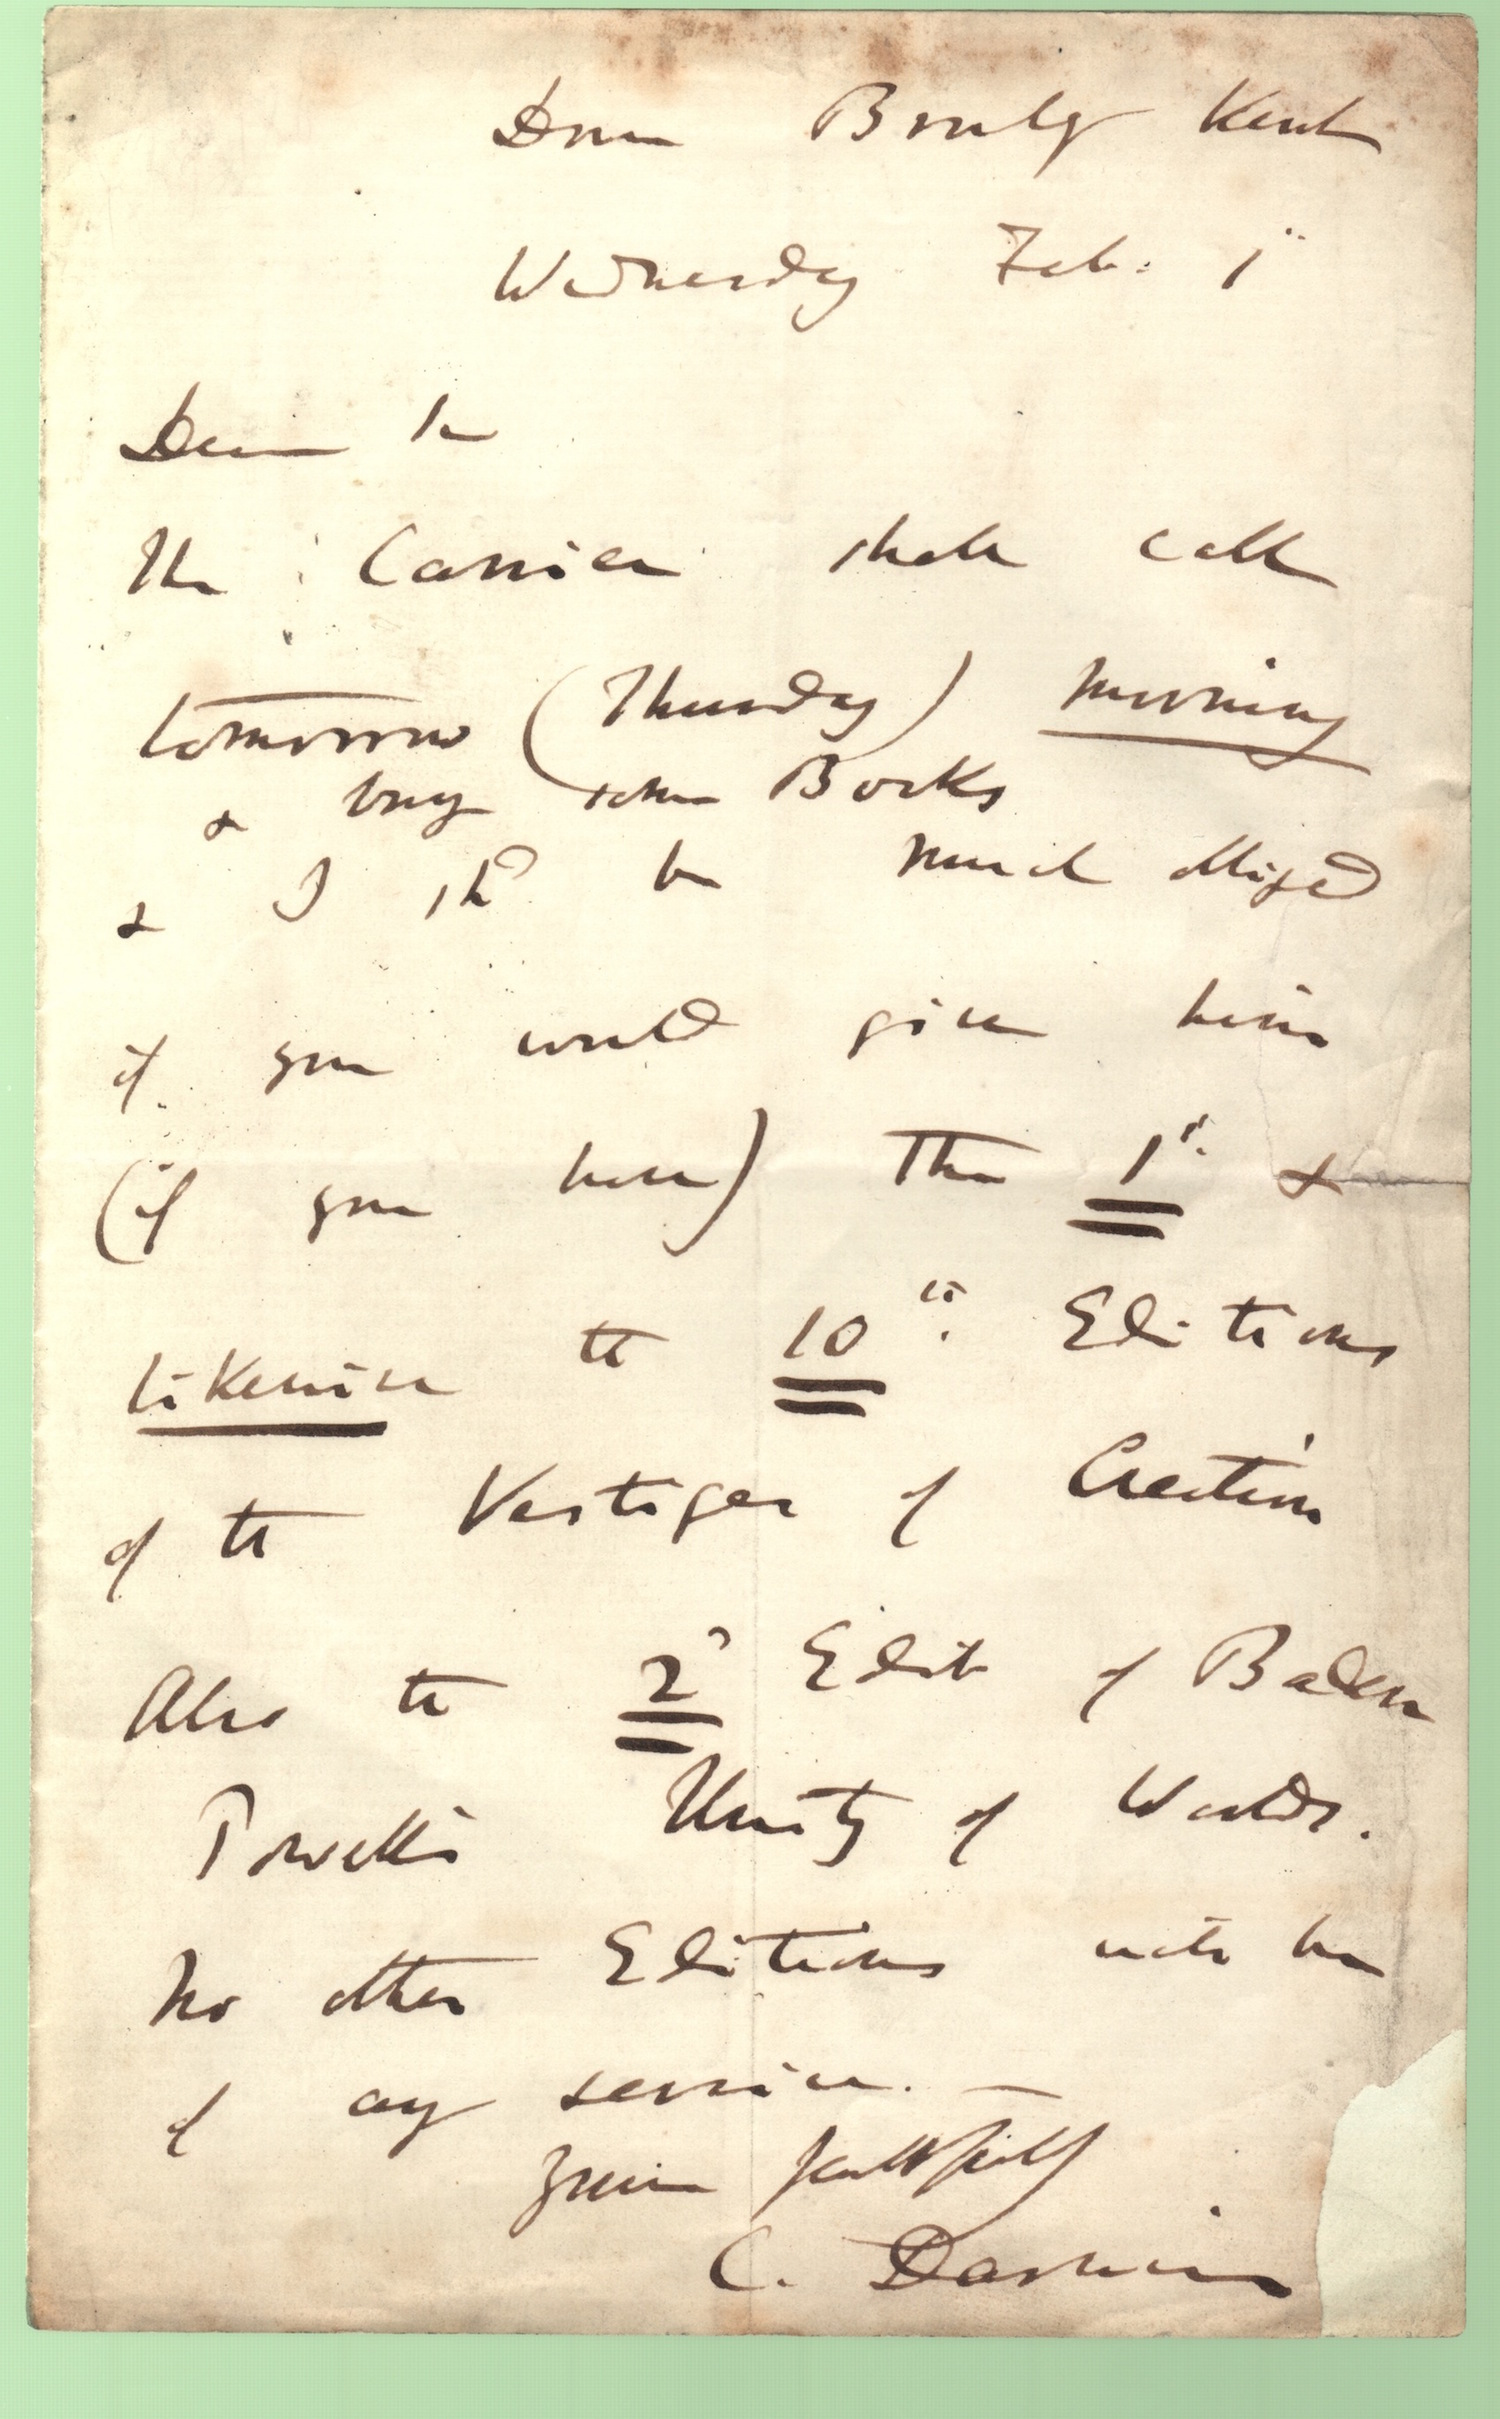 Letter from Charles Darwin, Down, to Charles Kingsley, 1867? December 13 : manuscript signed.